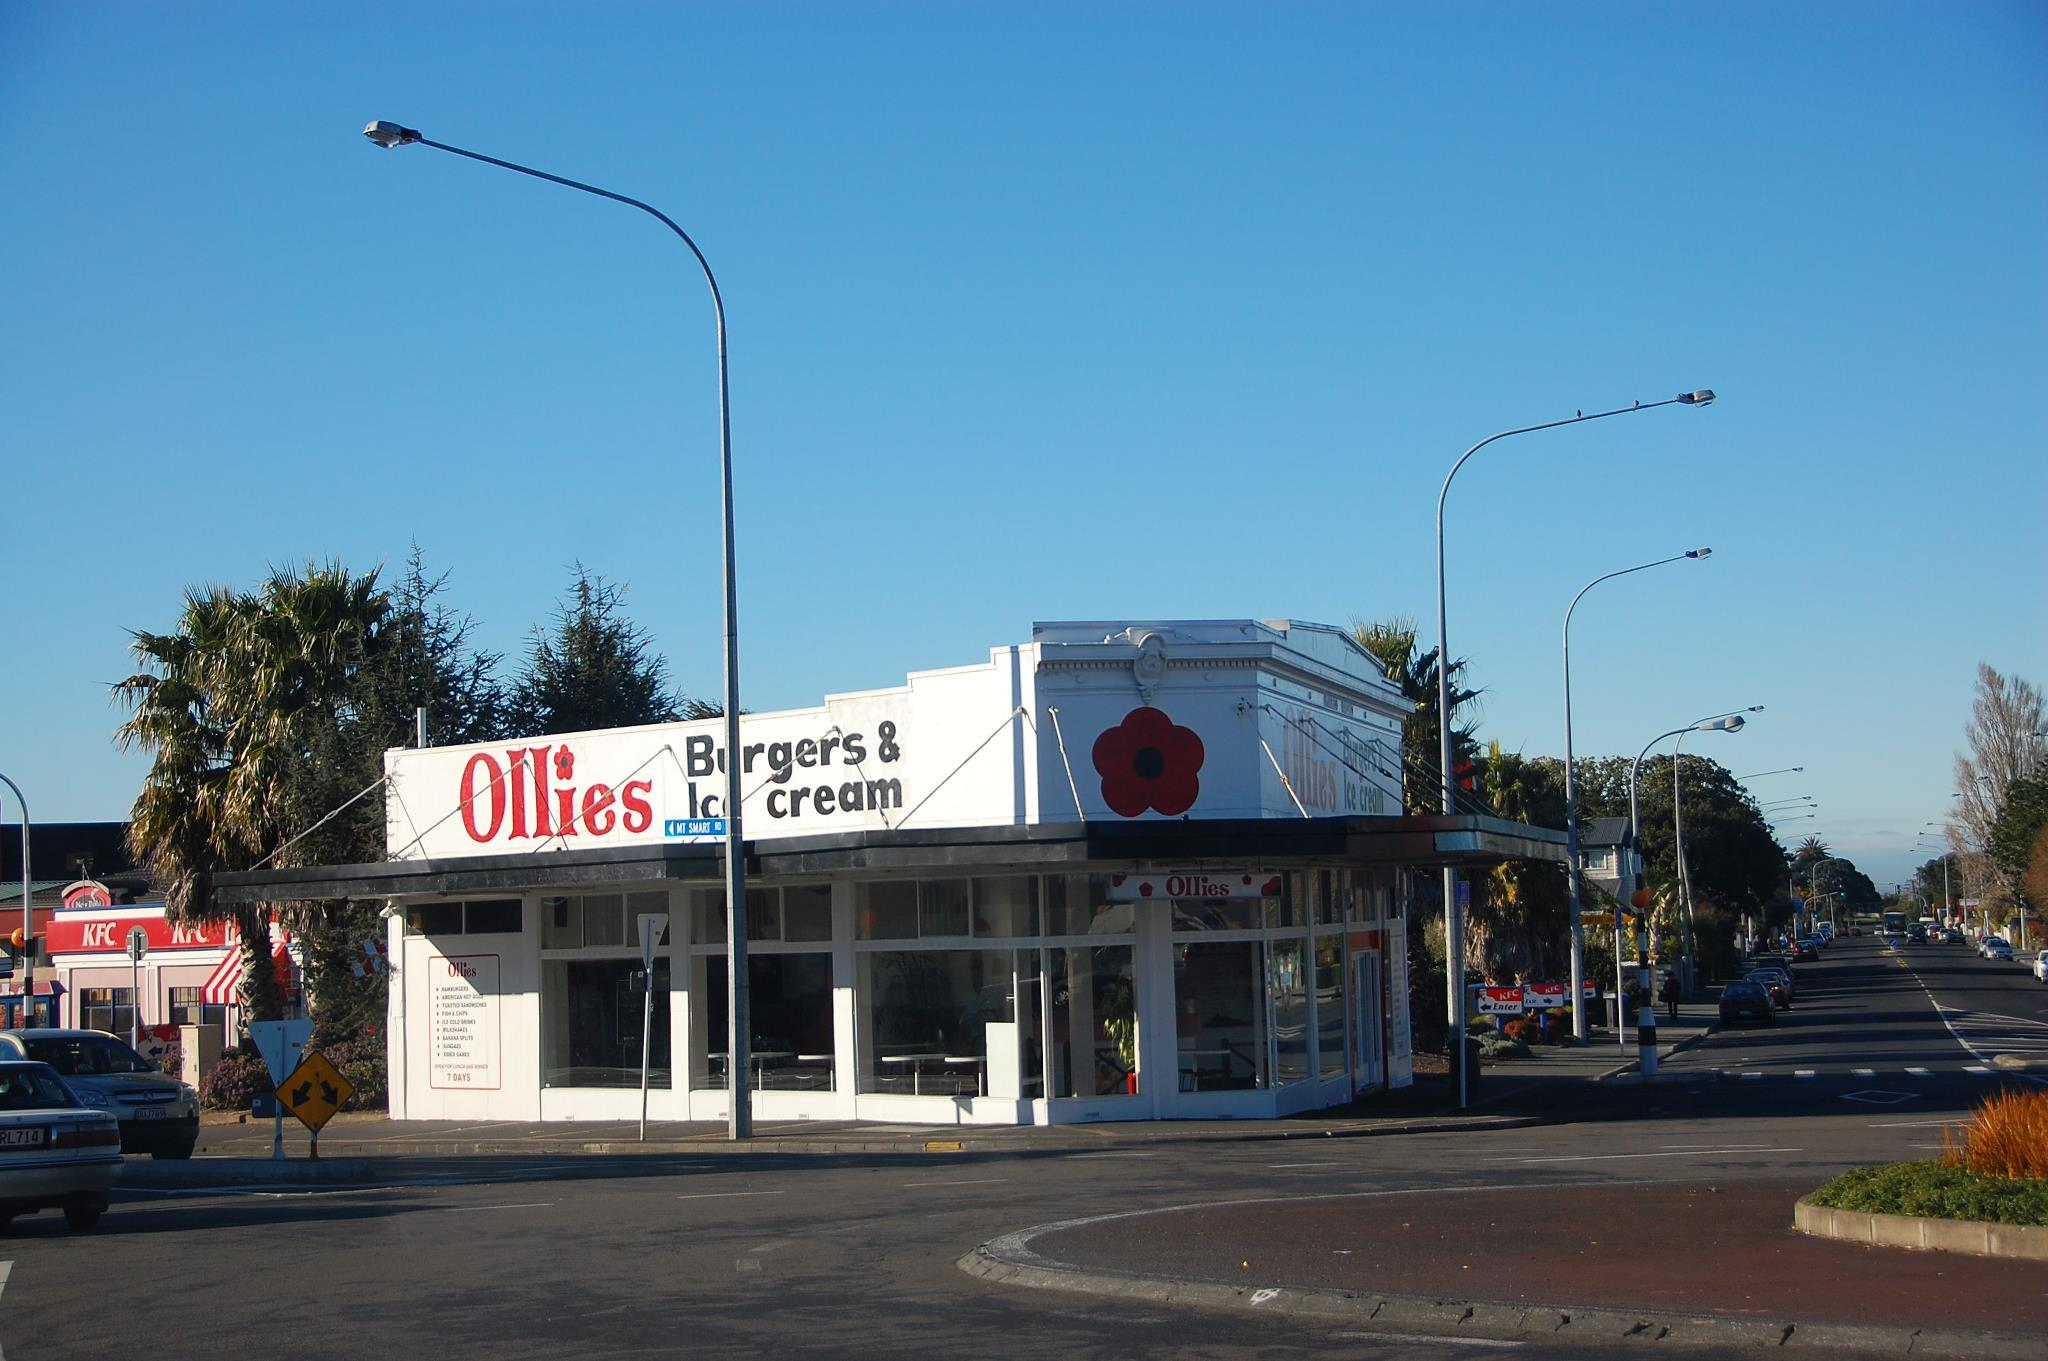 Ollies Burgers & Ice Cream